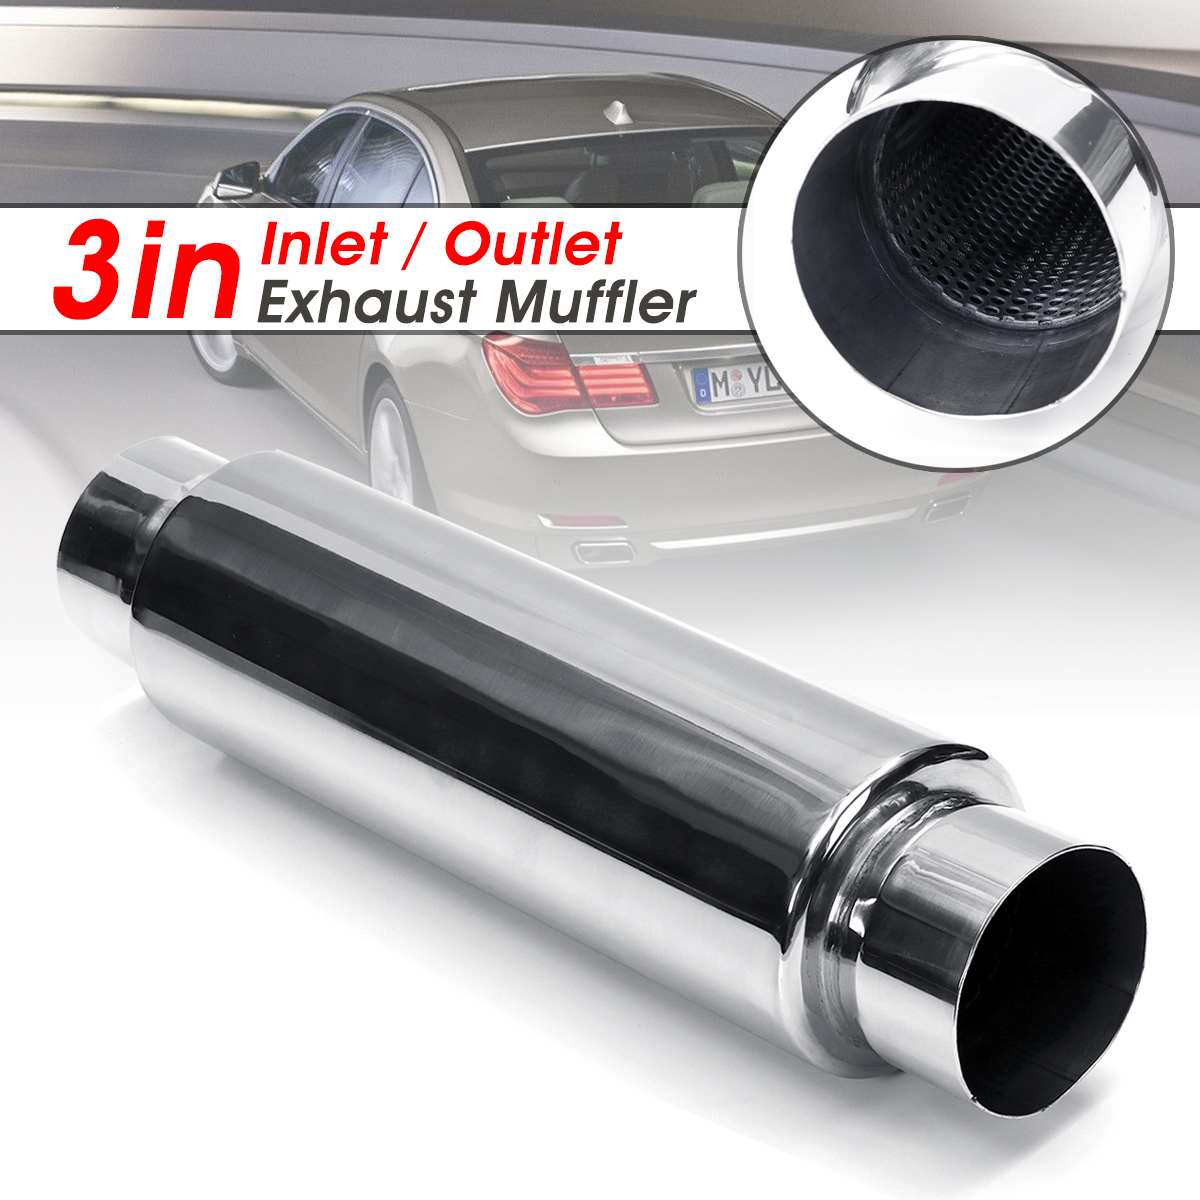 Universal Car Exhaust Resonator Muffler 76mm Inlet Outlet Exhaust Tip Pipe Tail Tube SilencerUniversal Car Exhaust Resonator Muffler 76mm Inlet Outlet Exhaust Tip Pipe Tail Tube Silencer